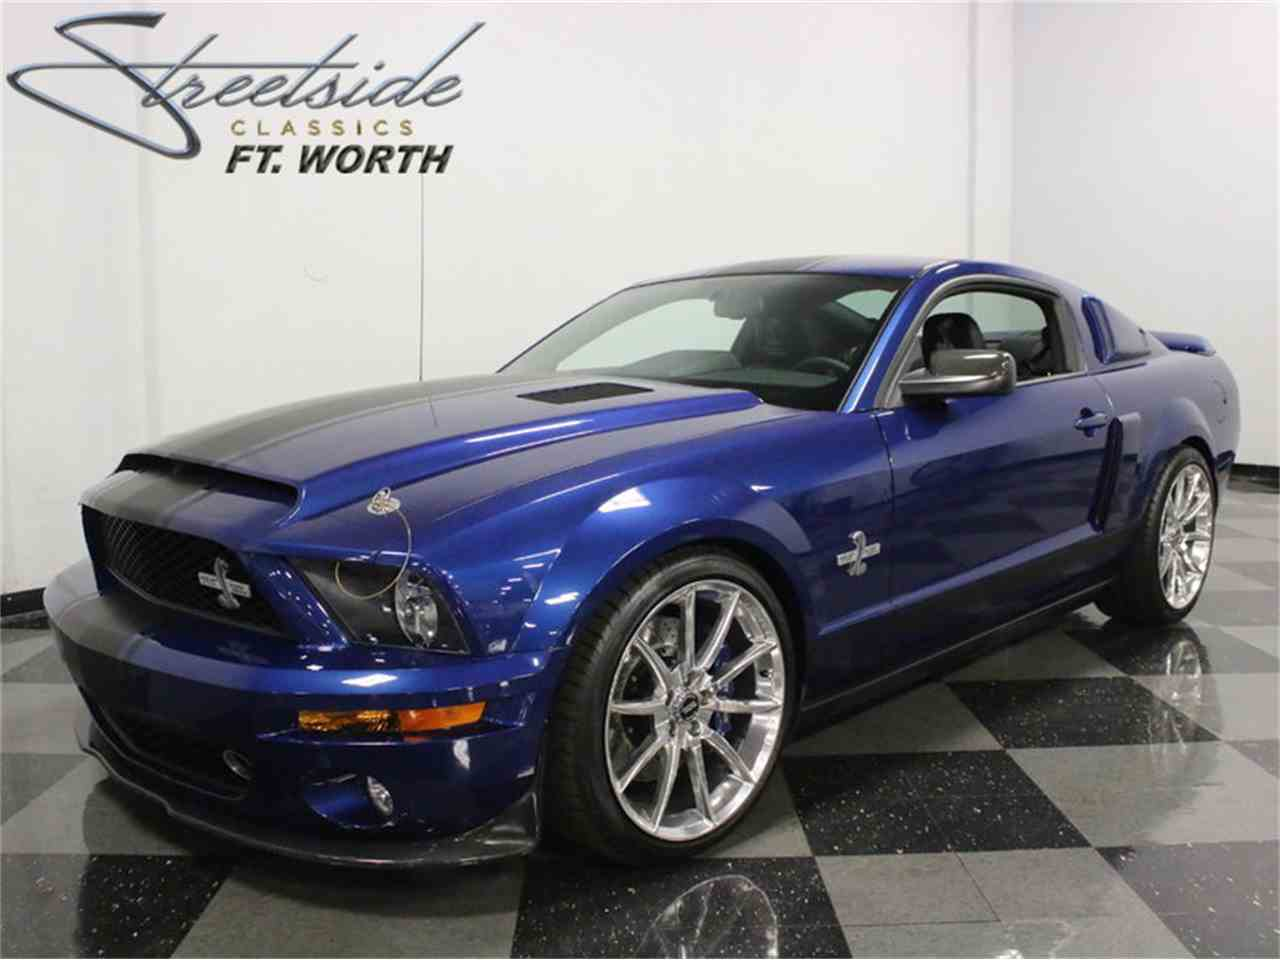 2007 to 2009 Ford Mustang Shelby GT500 for Sale on ClassicCarscom